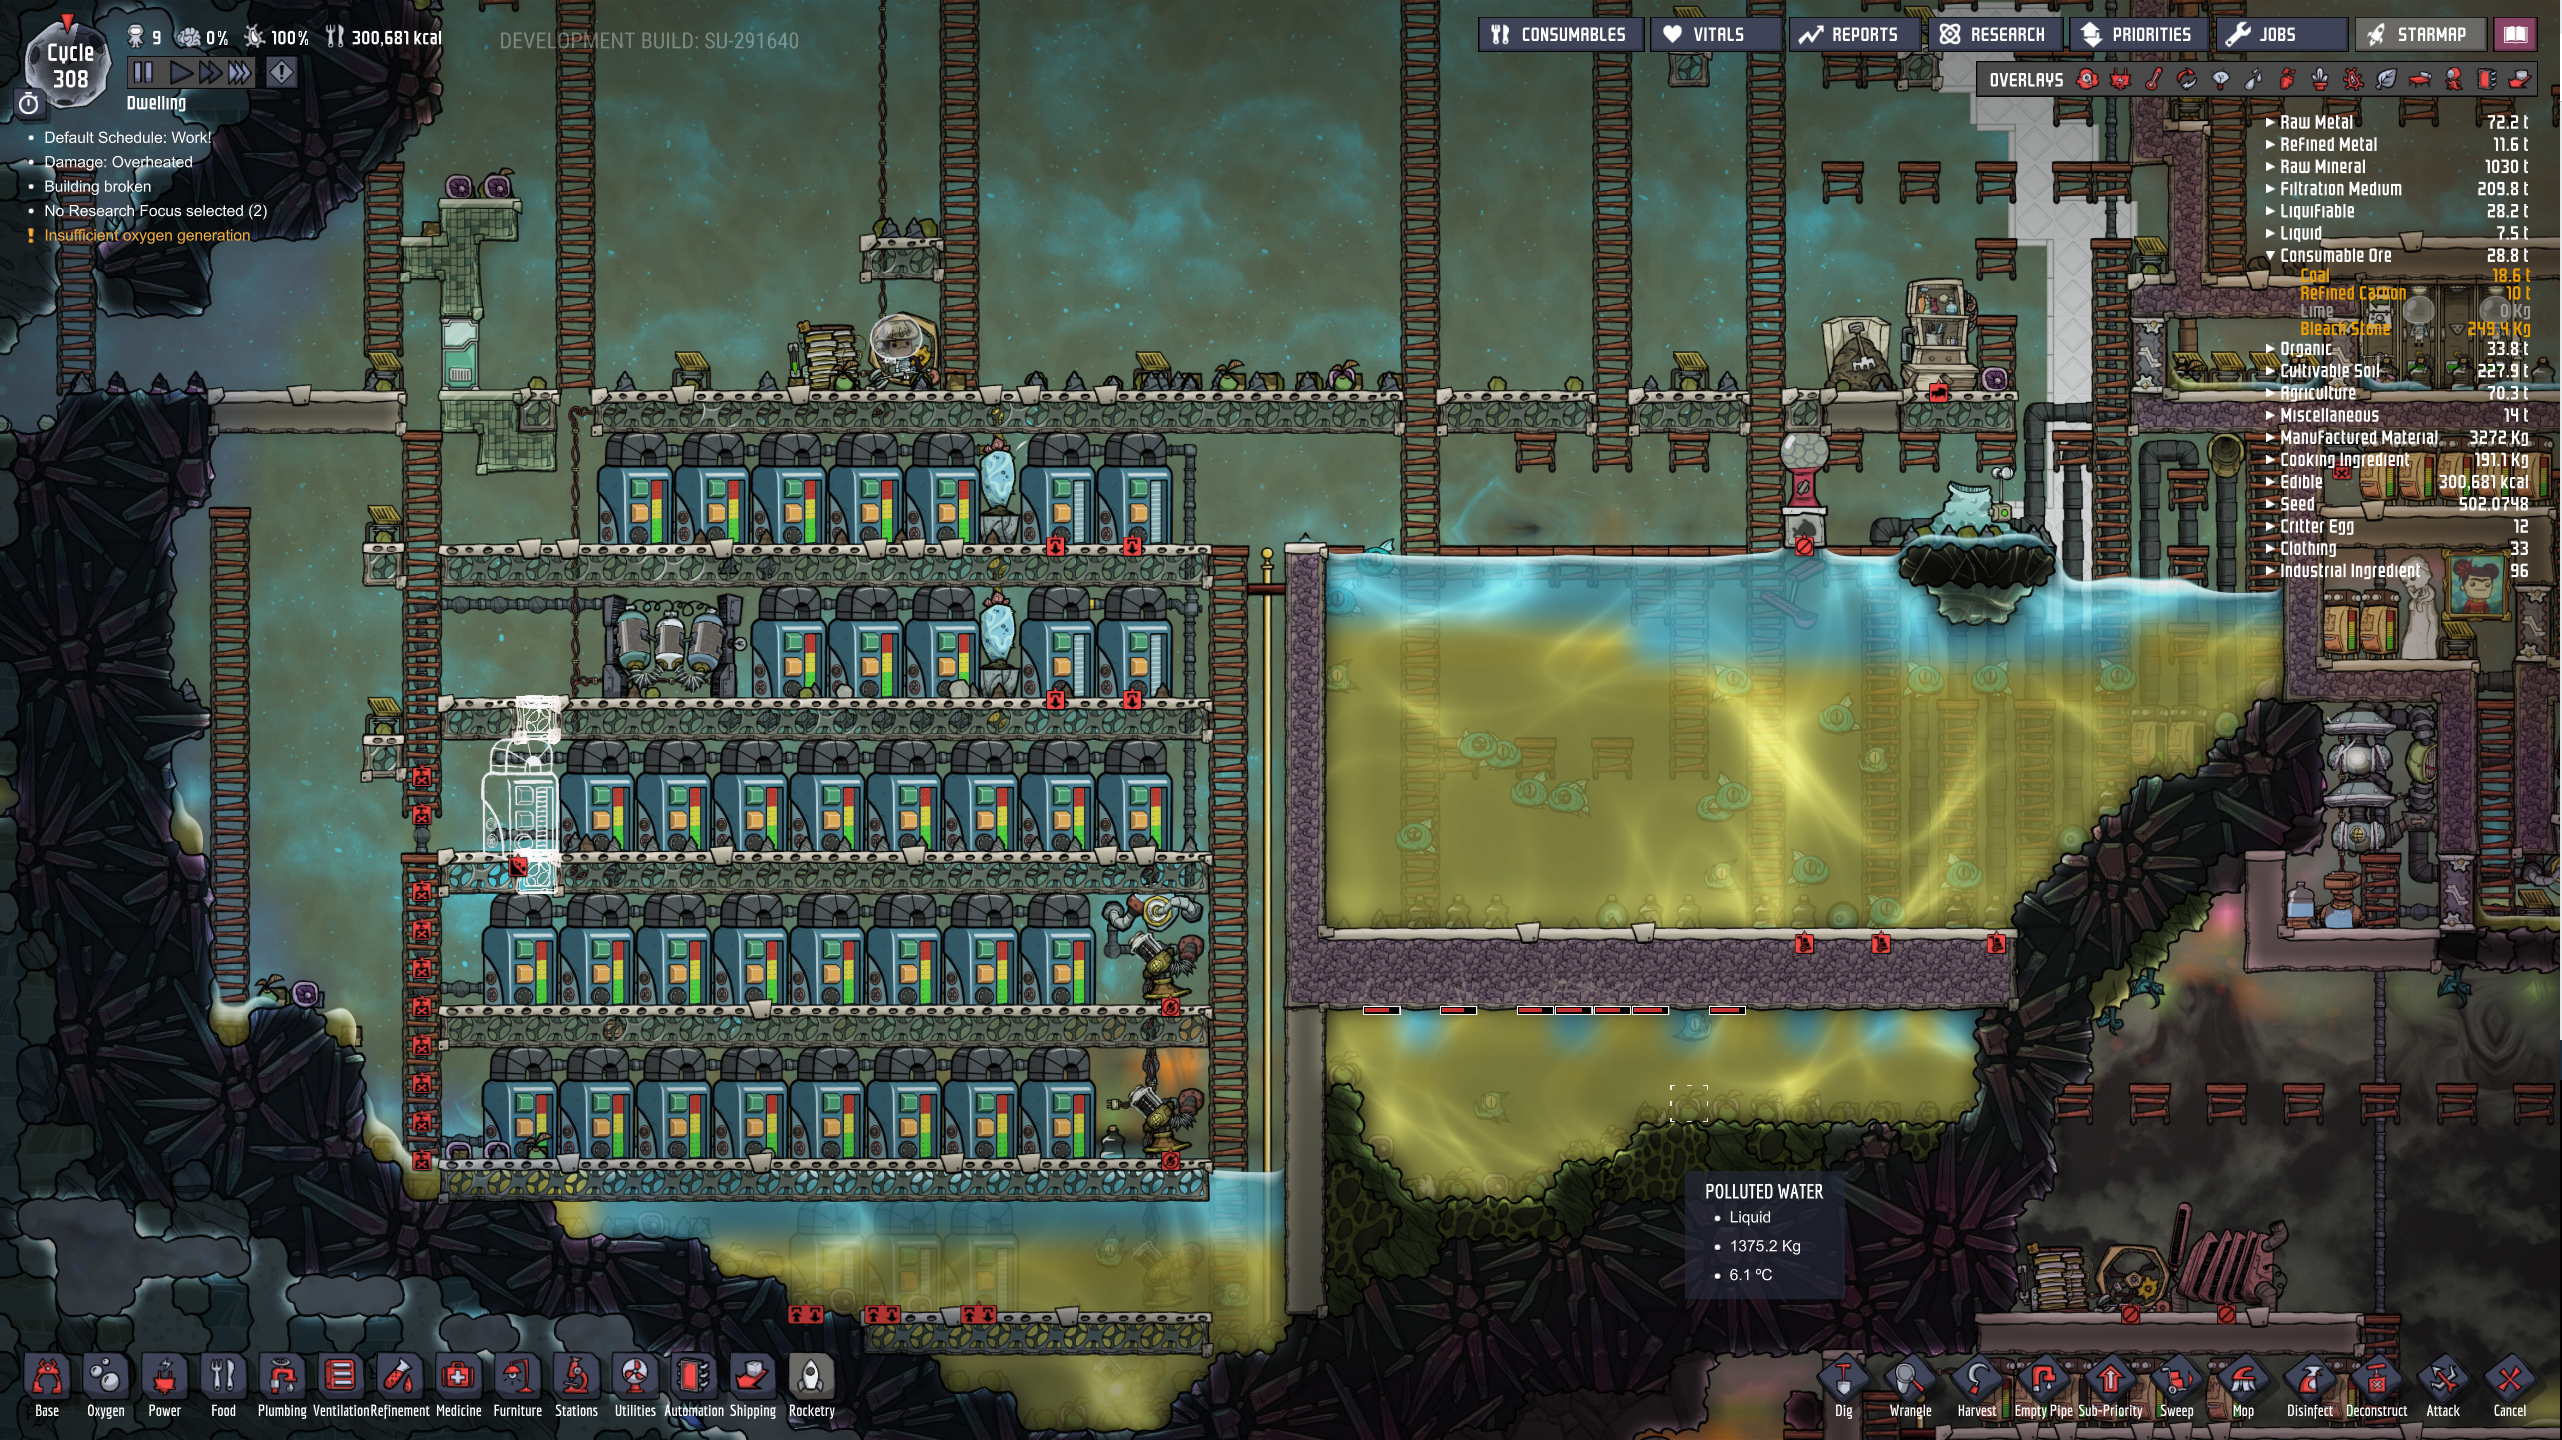 What Is The Best Hatch To Farm Page 2 Oxygen Not Included General Discussion Klei Entertainment Forums